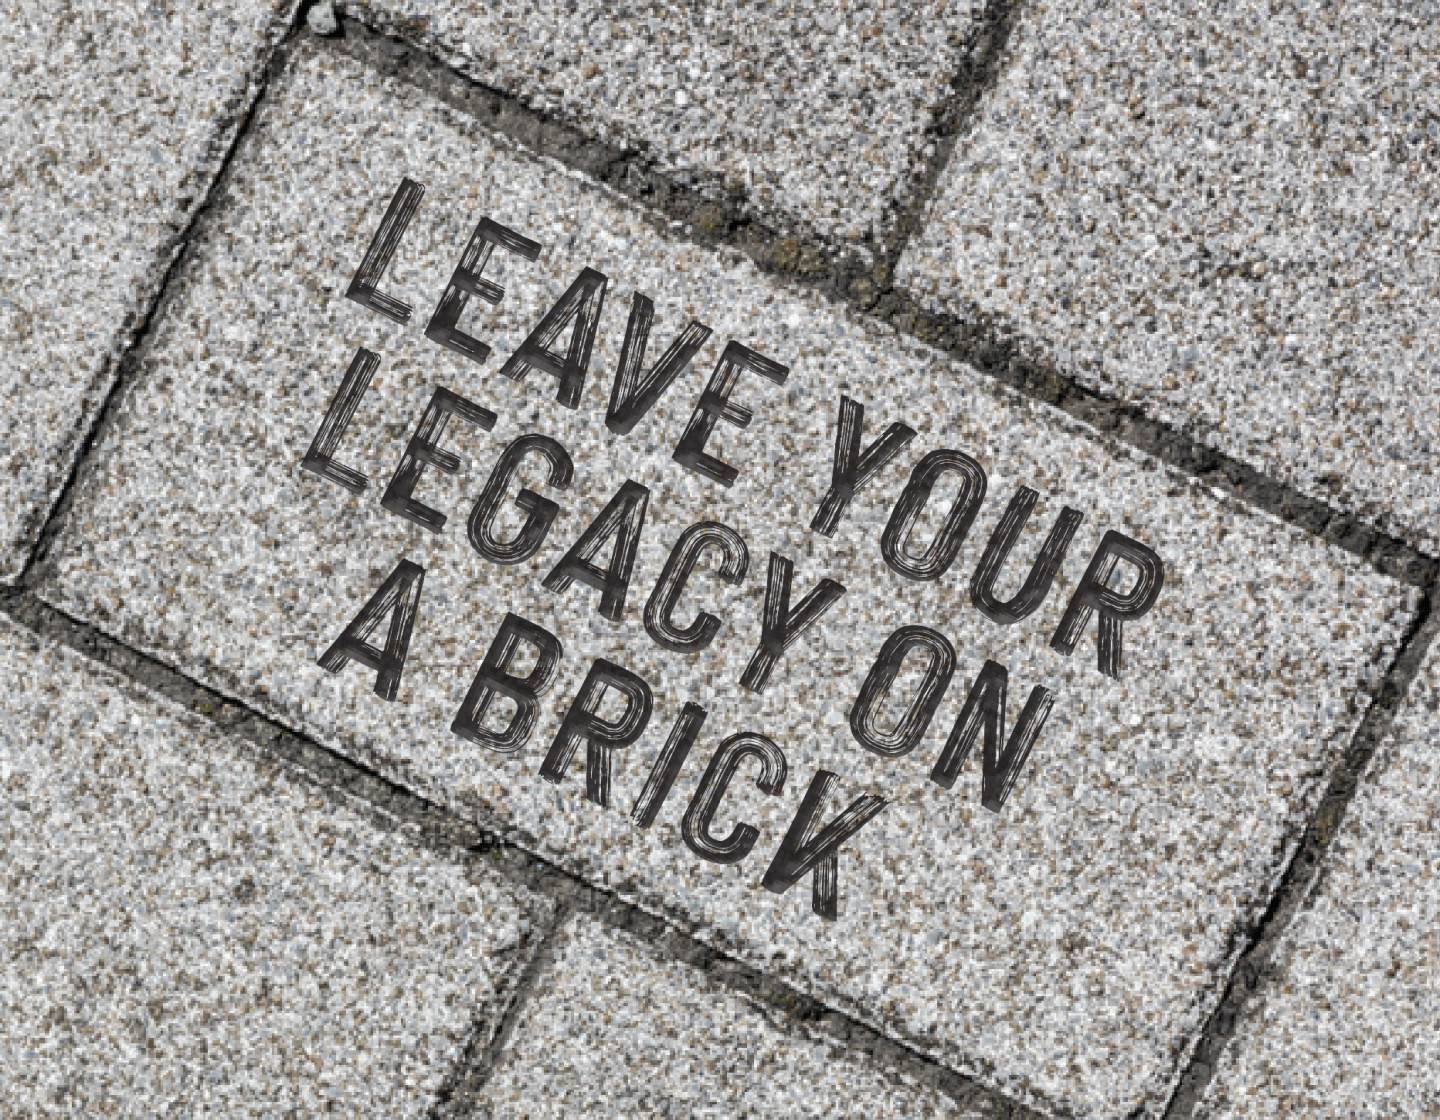 Leave your legacy on a brick